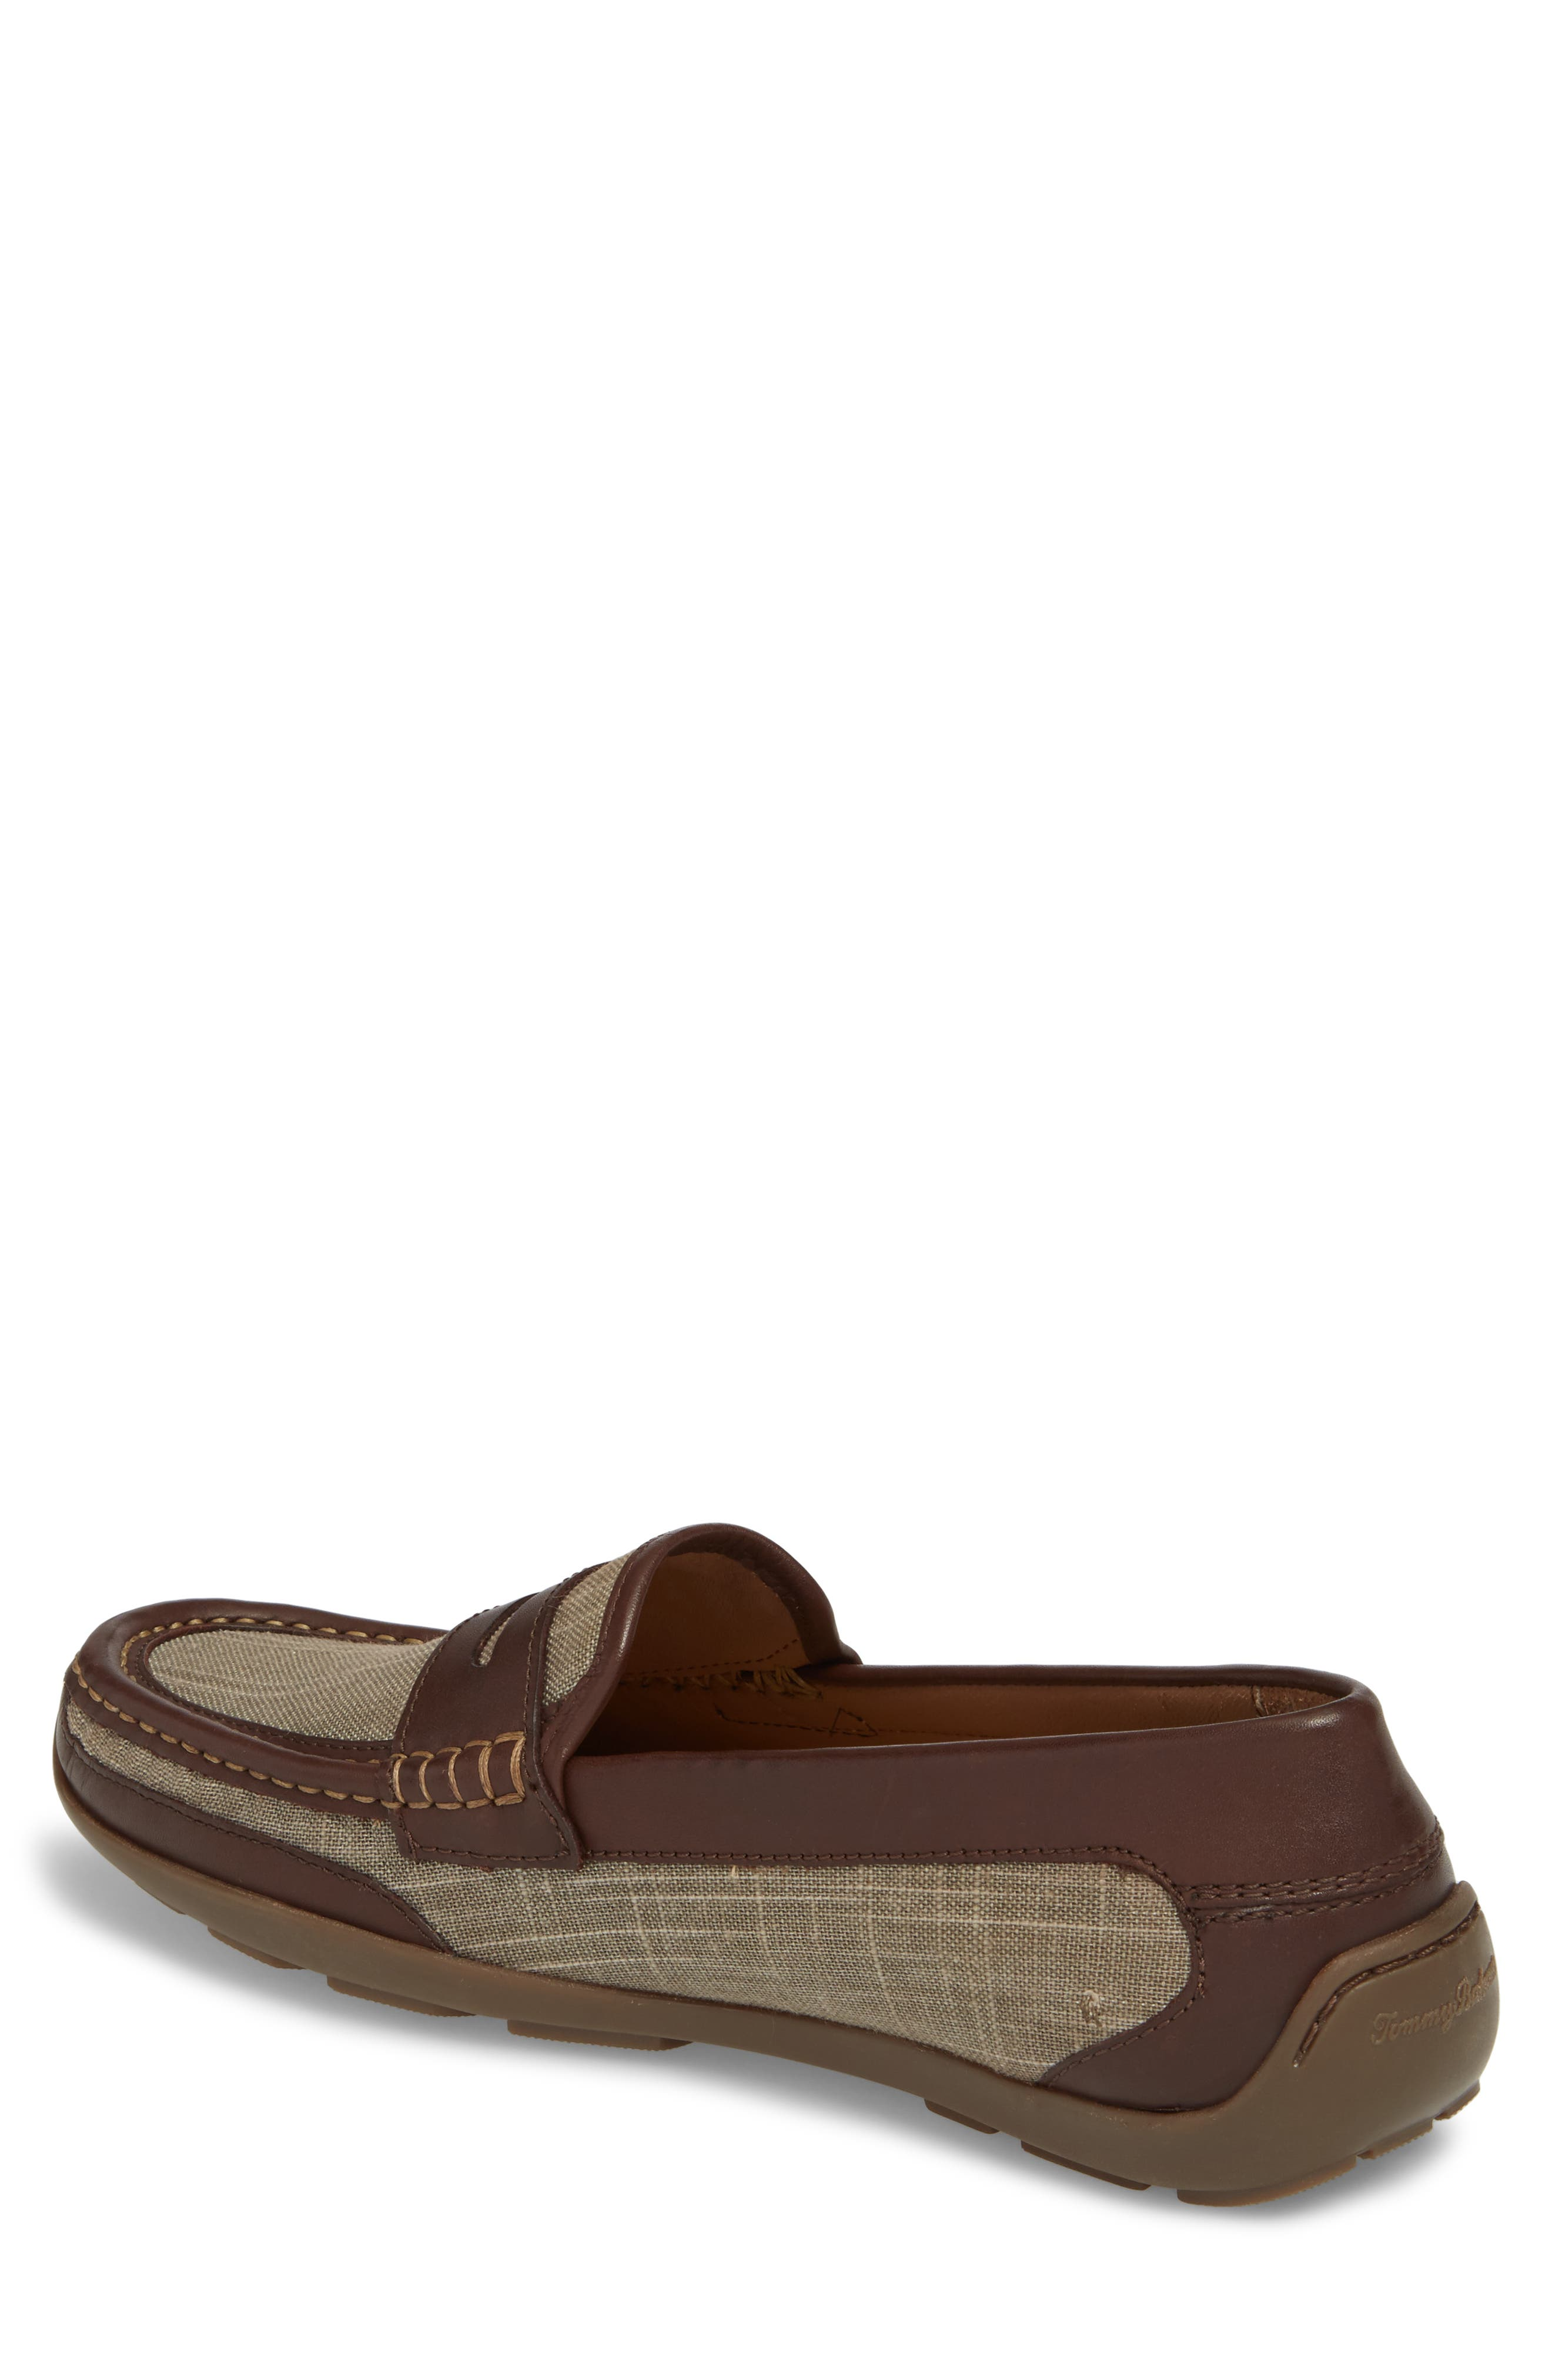 Taza Fronds Driving Shoe,                             Alternate thumbnail 2, color,                             BROWN/ OLIVE LEATHER/ LINEN